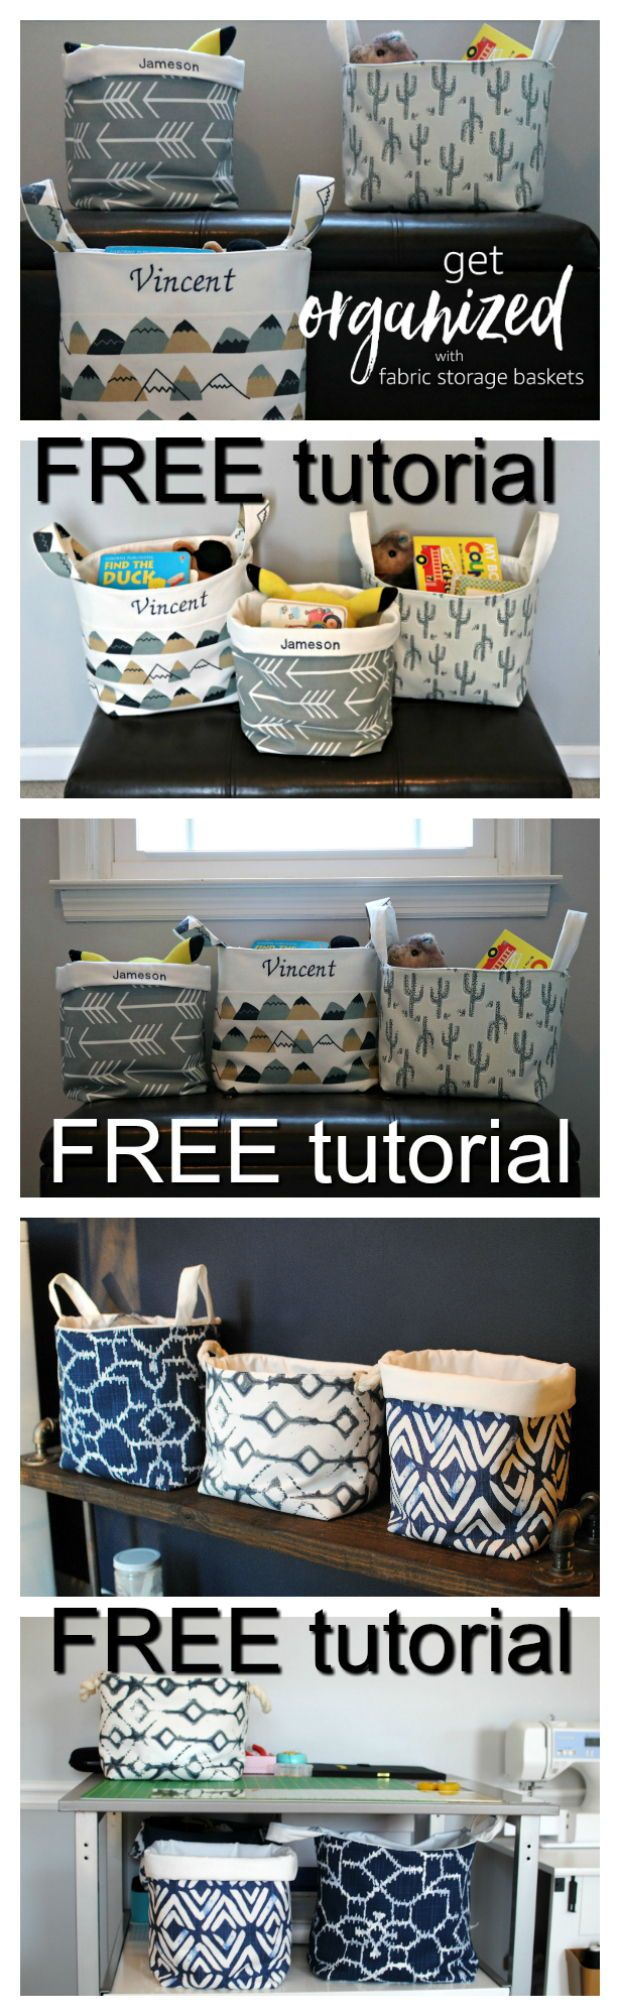 These DIY fabric baskets are a quick and easy way to tidy up those tricky rooms in the house where there always seems to be disarray. Here's an easy to follow FREE tutorial on how to make them.